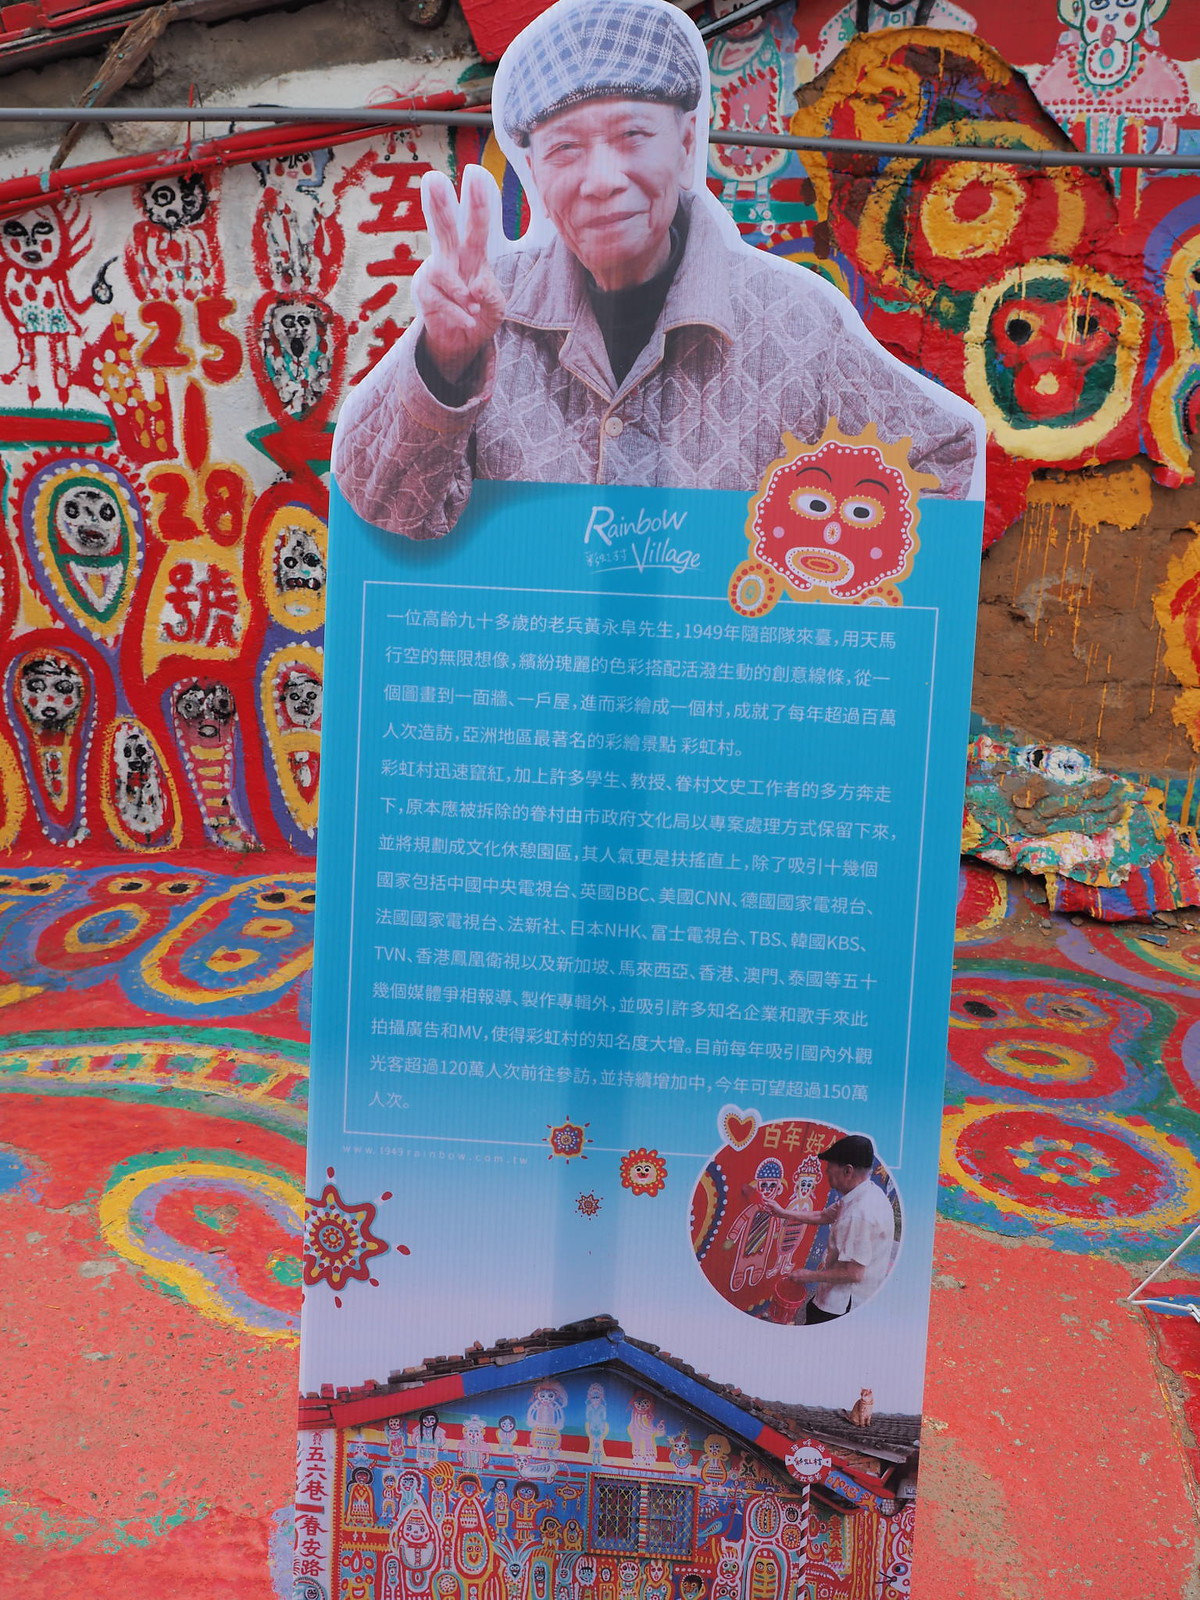 History about the Rainbow Village. The person here is Rainbow Grandpa or real name Huang Yung-fu